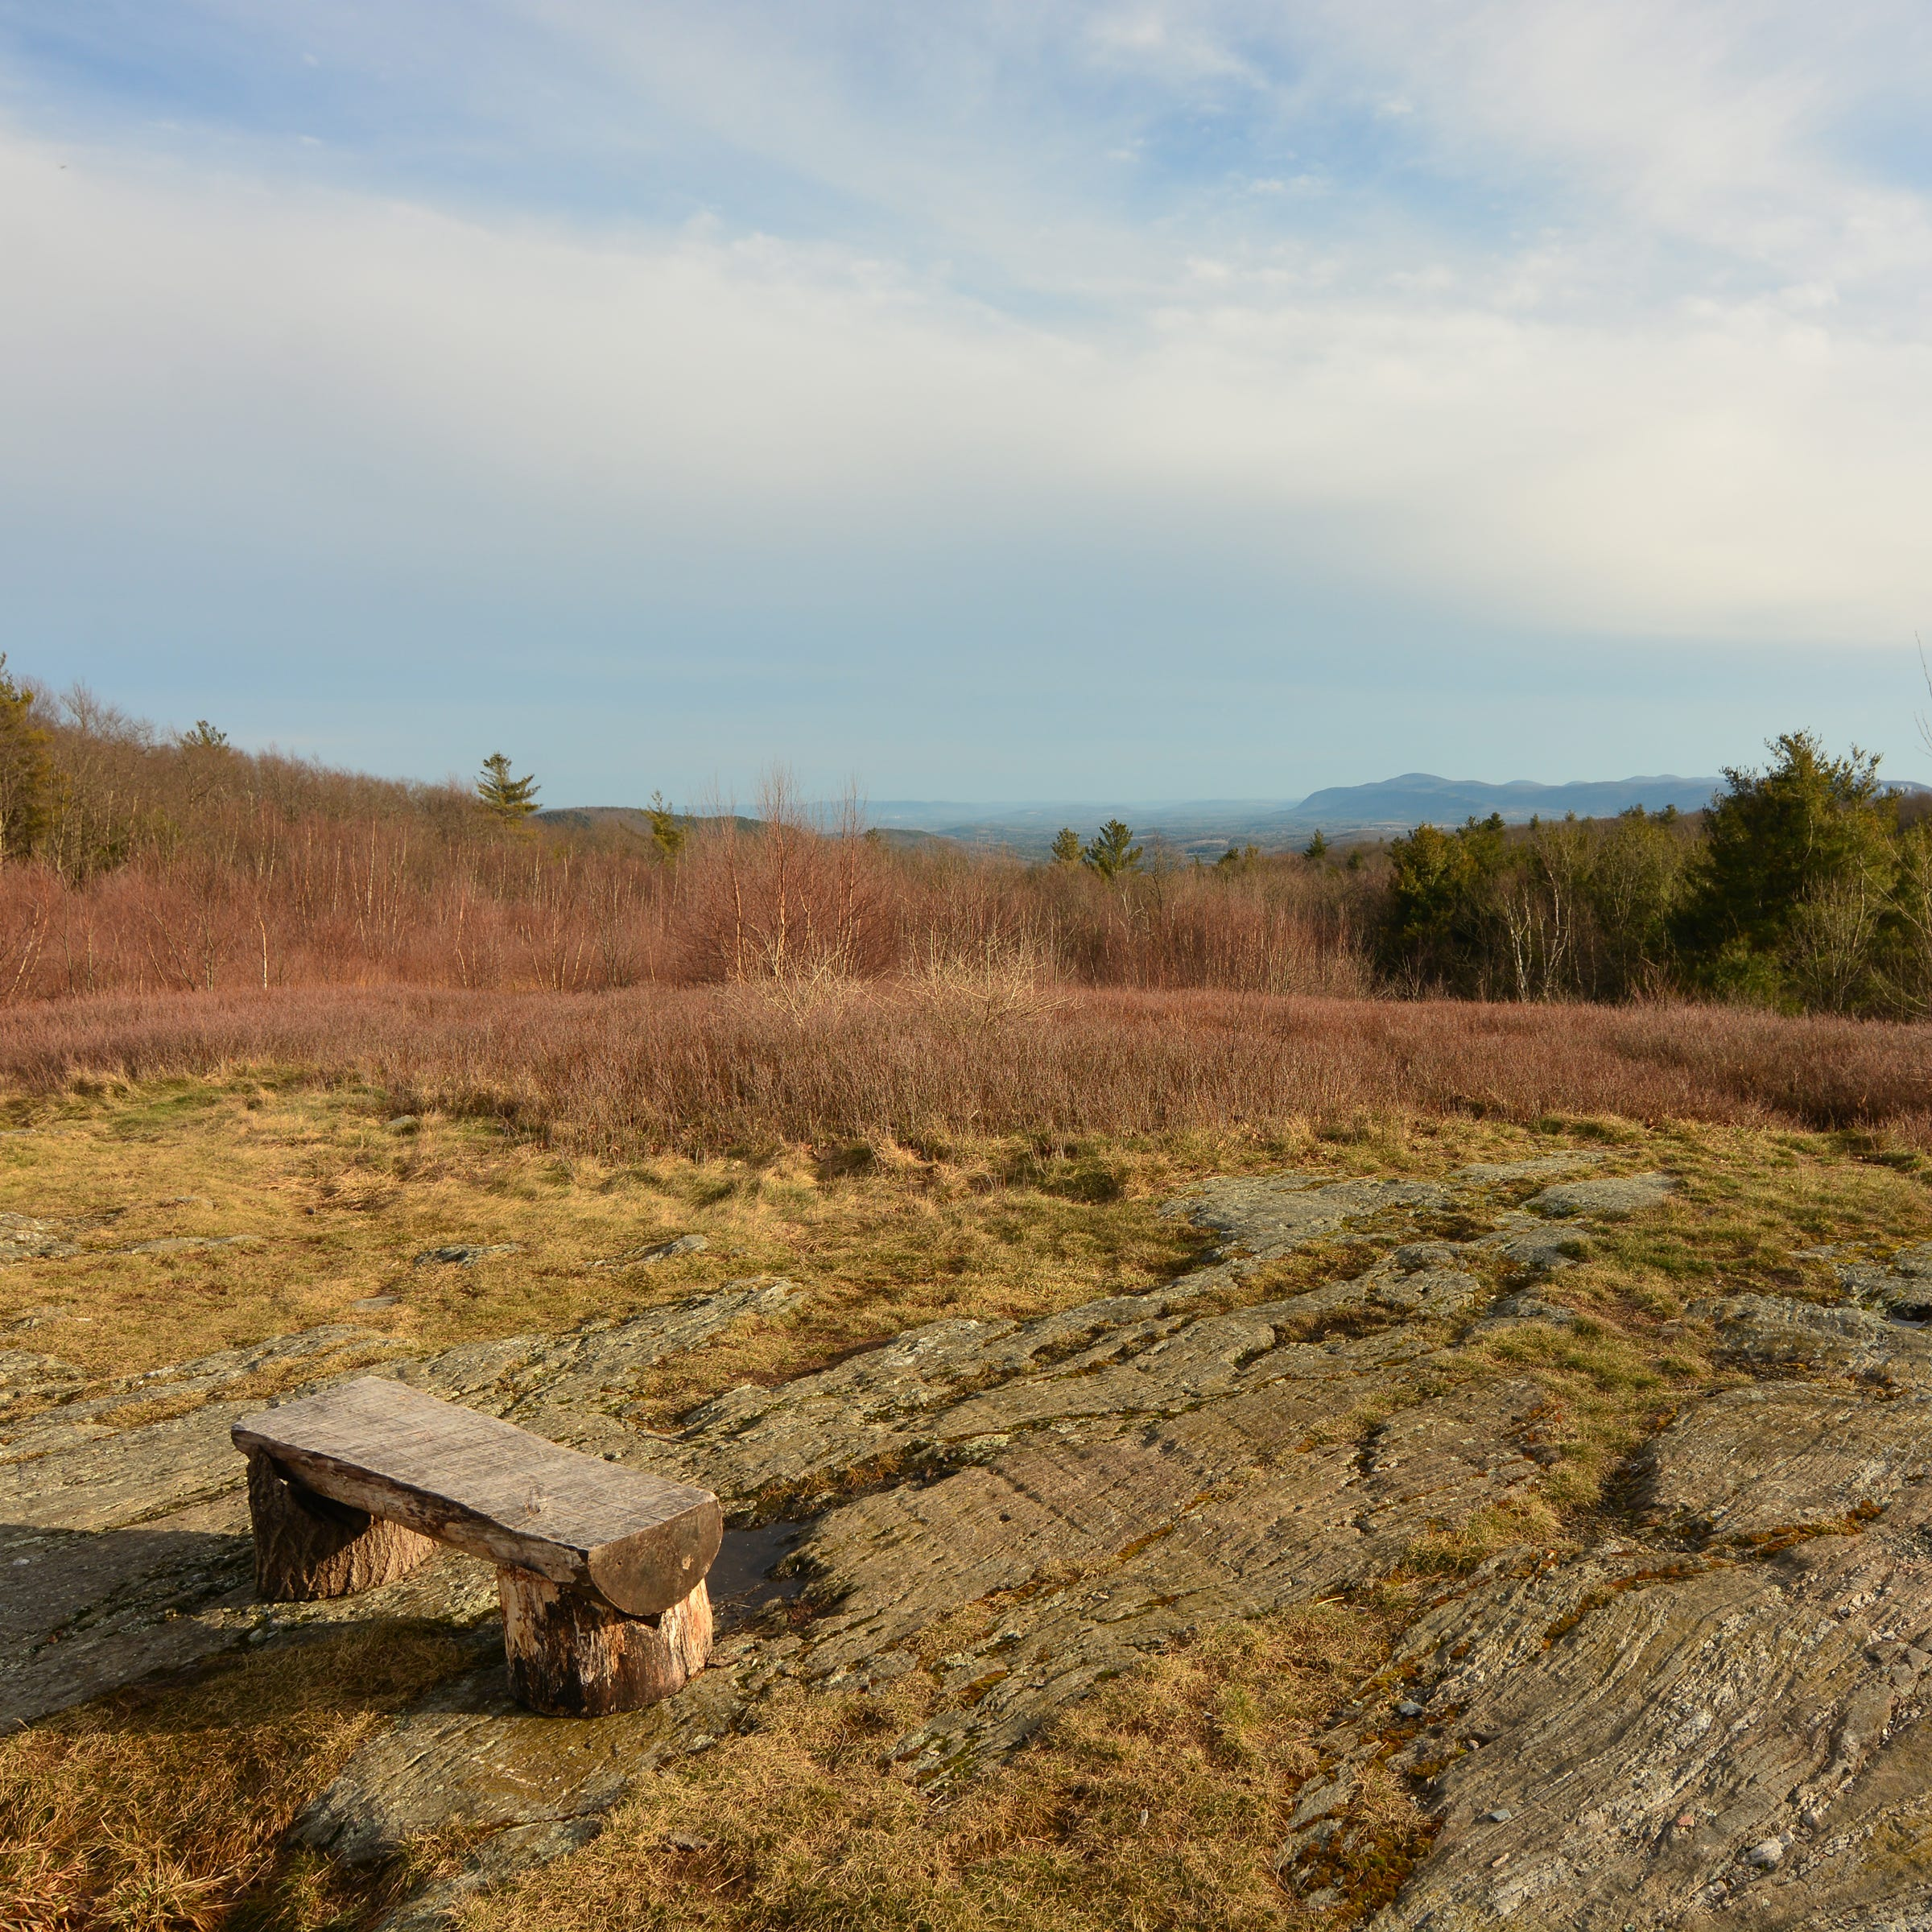 Moderate hike up Harvey Mountain rewards with view of South Taconic Range